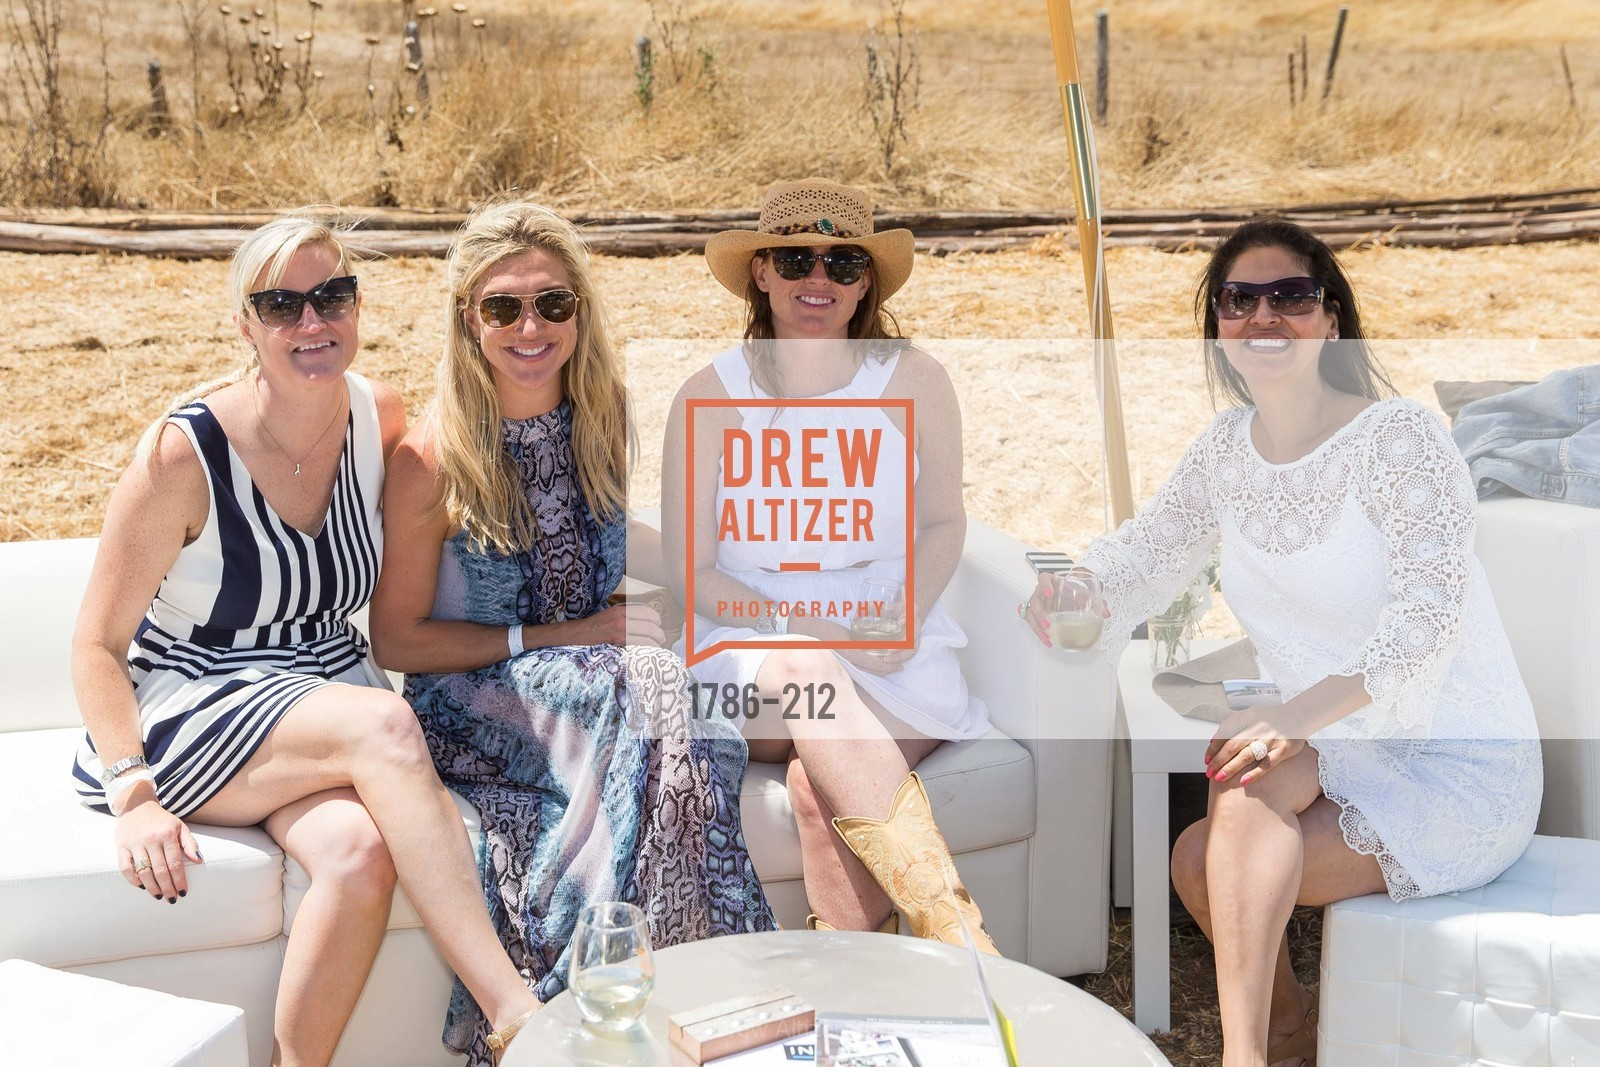 Blaire Palmer, Jacqueline Hawk, Jackie Cartwright, Patty Sanchez, Stick & Ball Oyster Cup Polo Tournament, Cerro Pampa Polo Club, July 25th, 2015,Drew Altizer, Drew Altizer Photography, full-service agency, private events, San Francisco photographer, photographer california